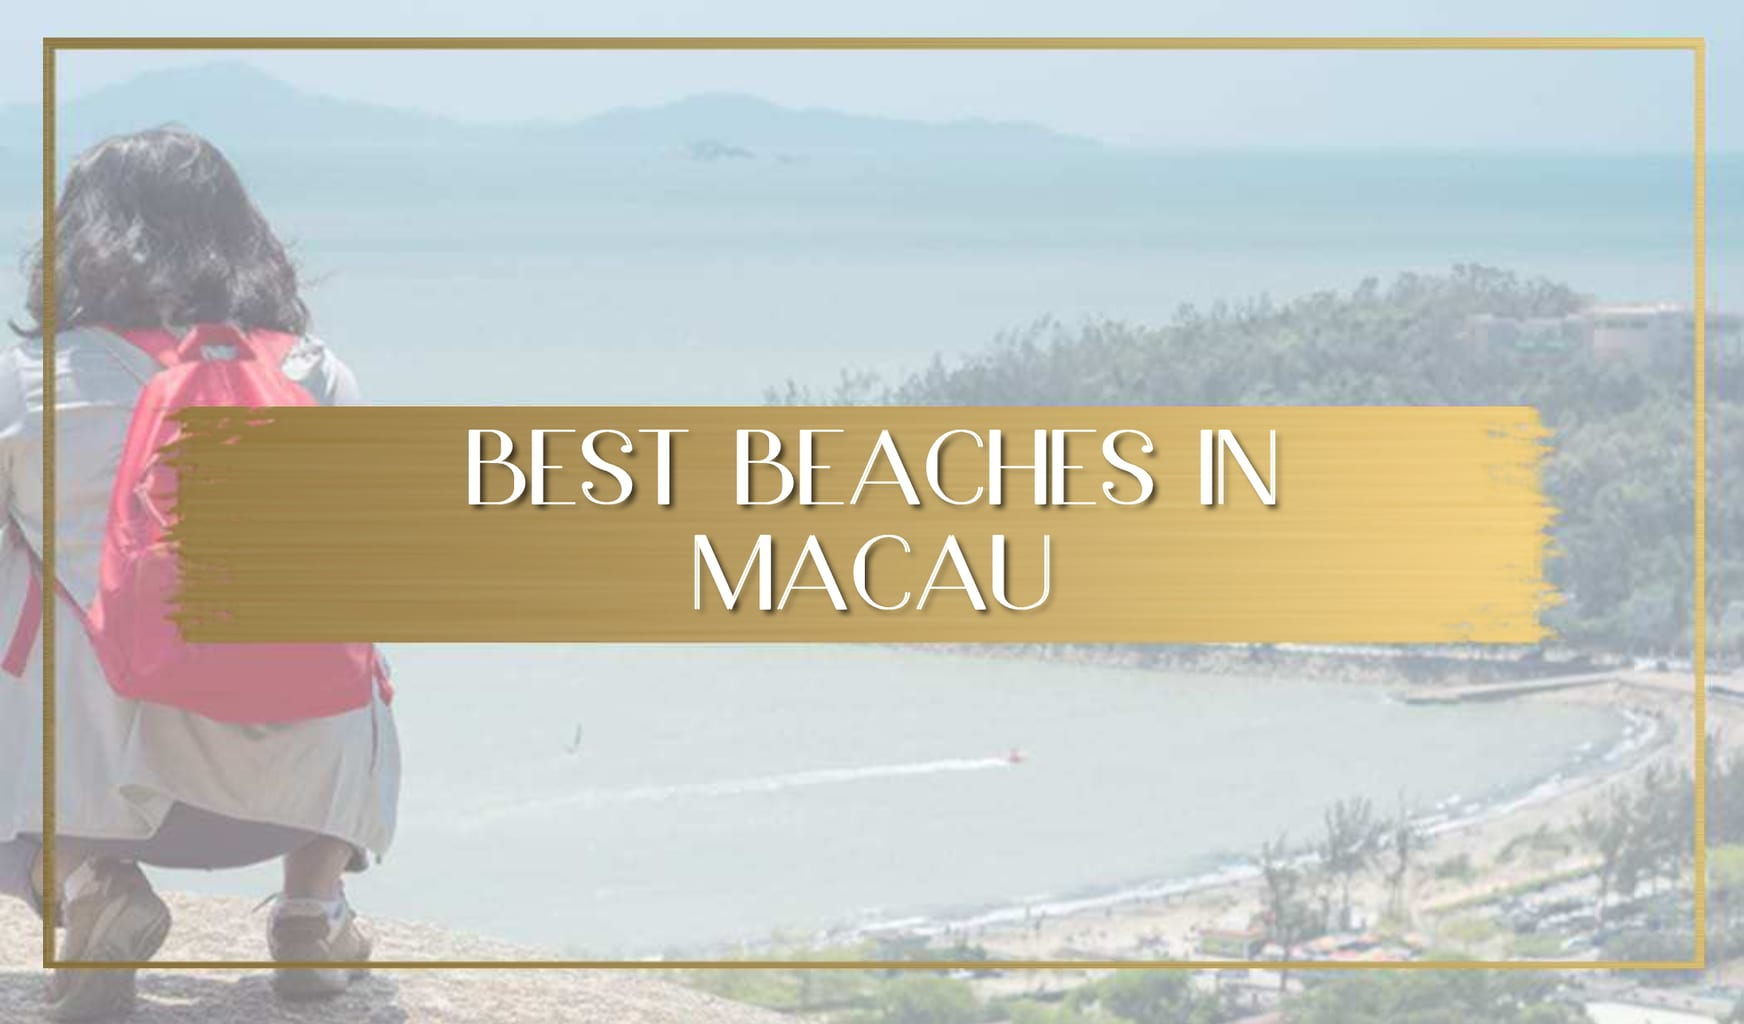 Best beaches in Macau main